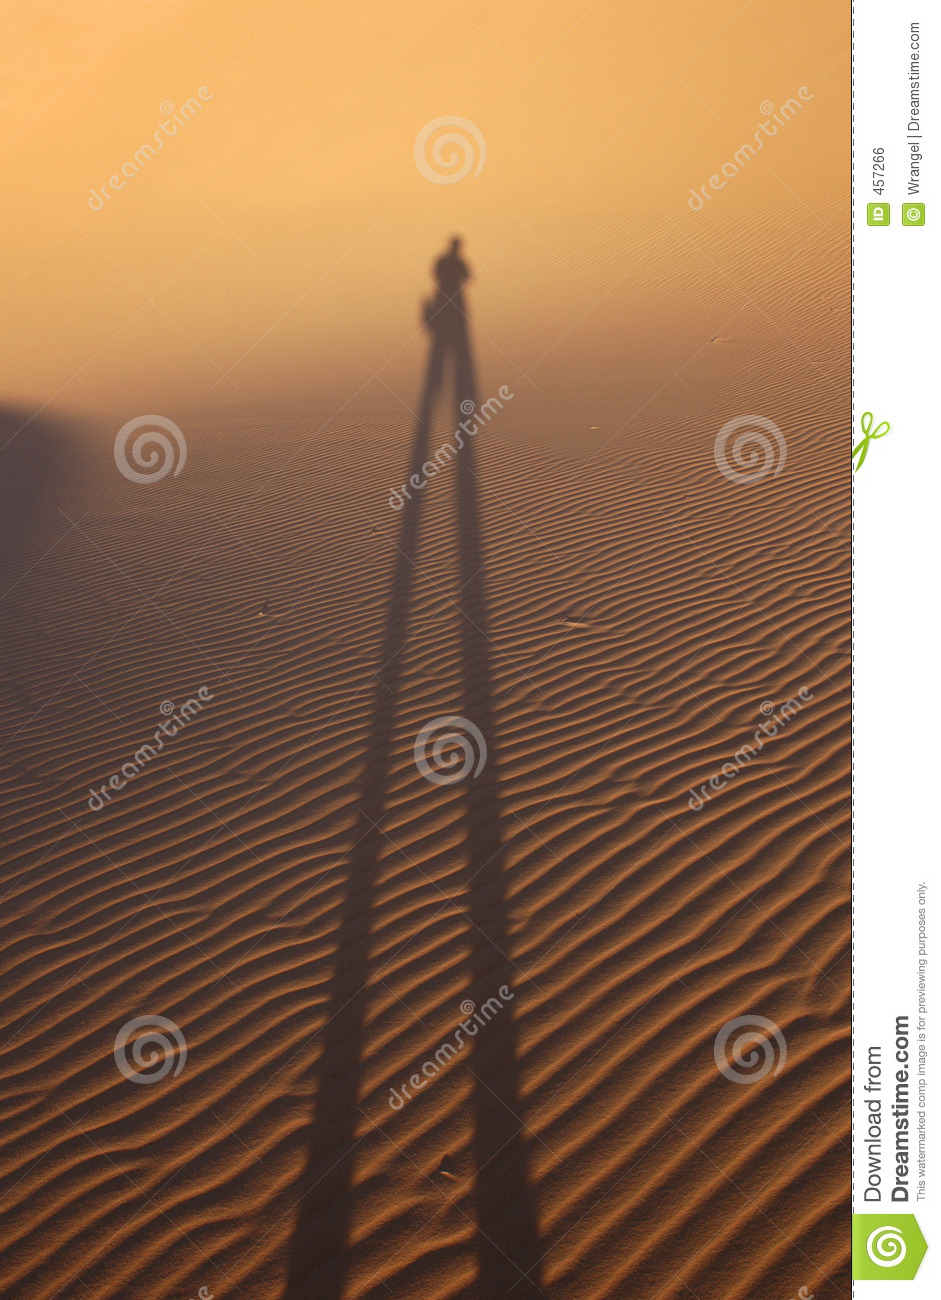 human interaction in the sahara desert Have questions about visiting the sahara desert in this post we're answering some of the top questions we're asked about this region.